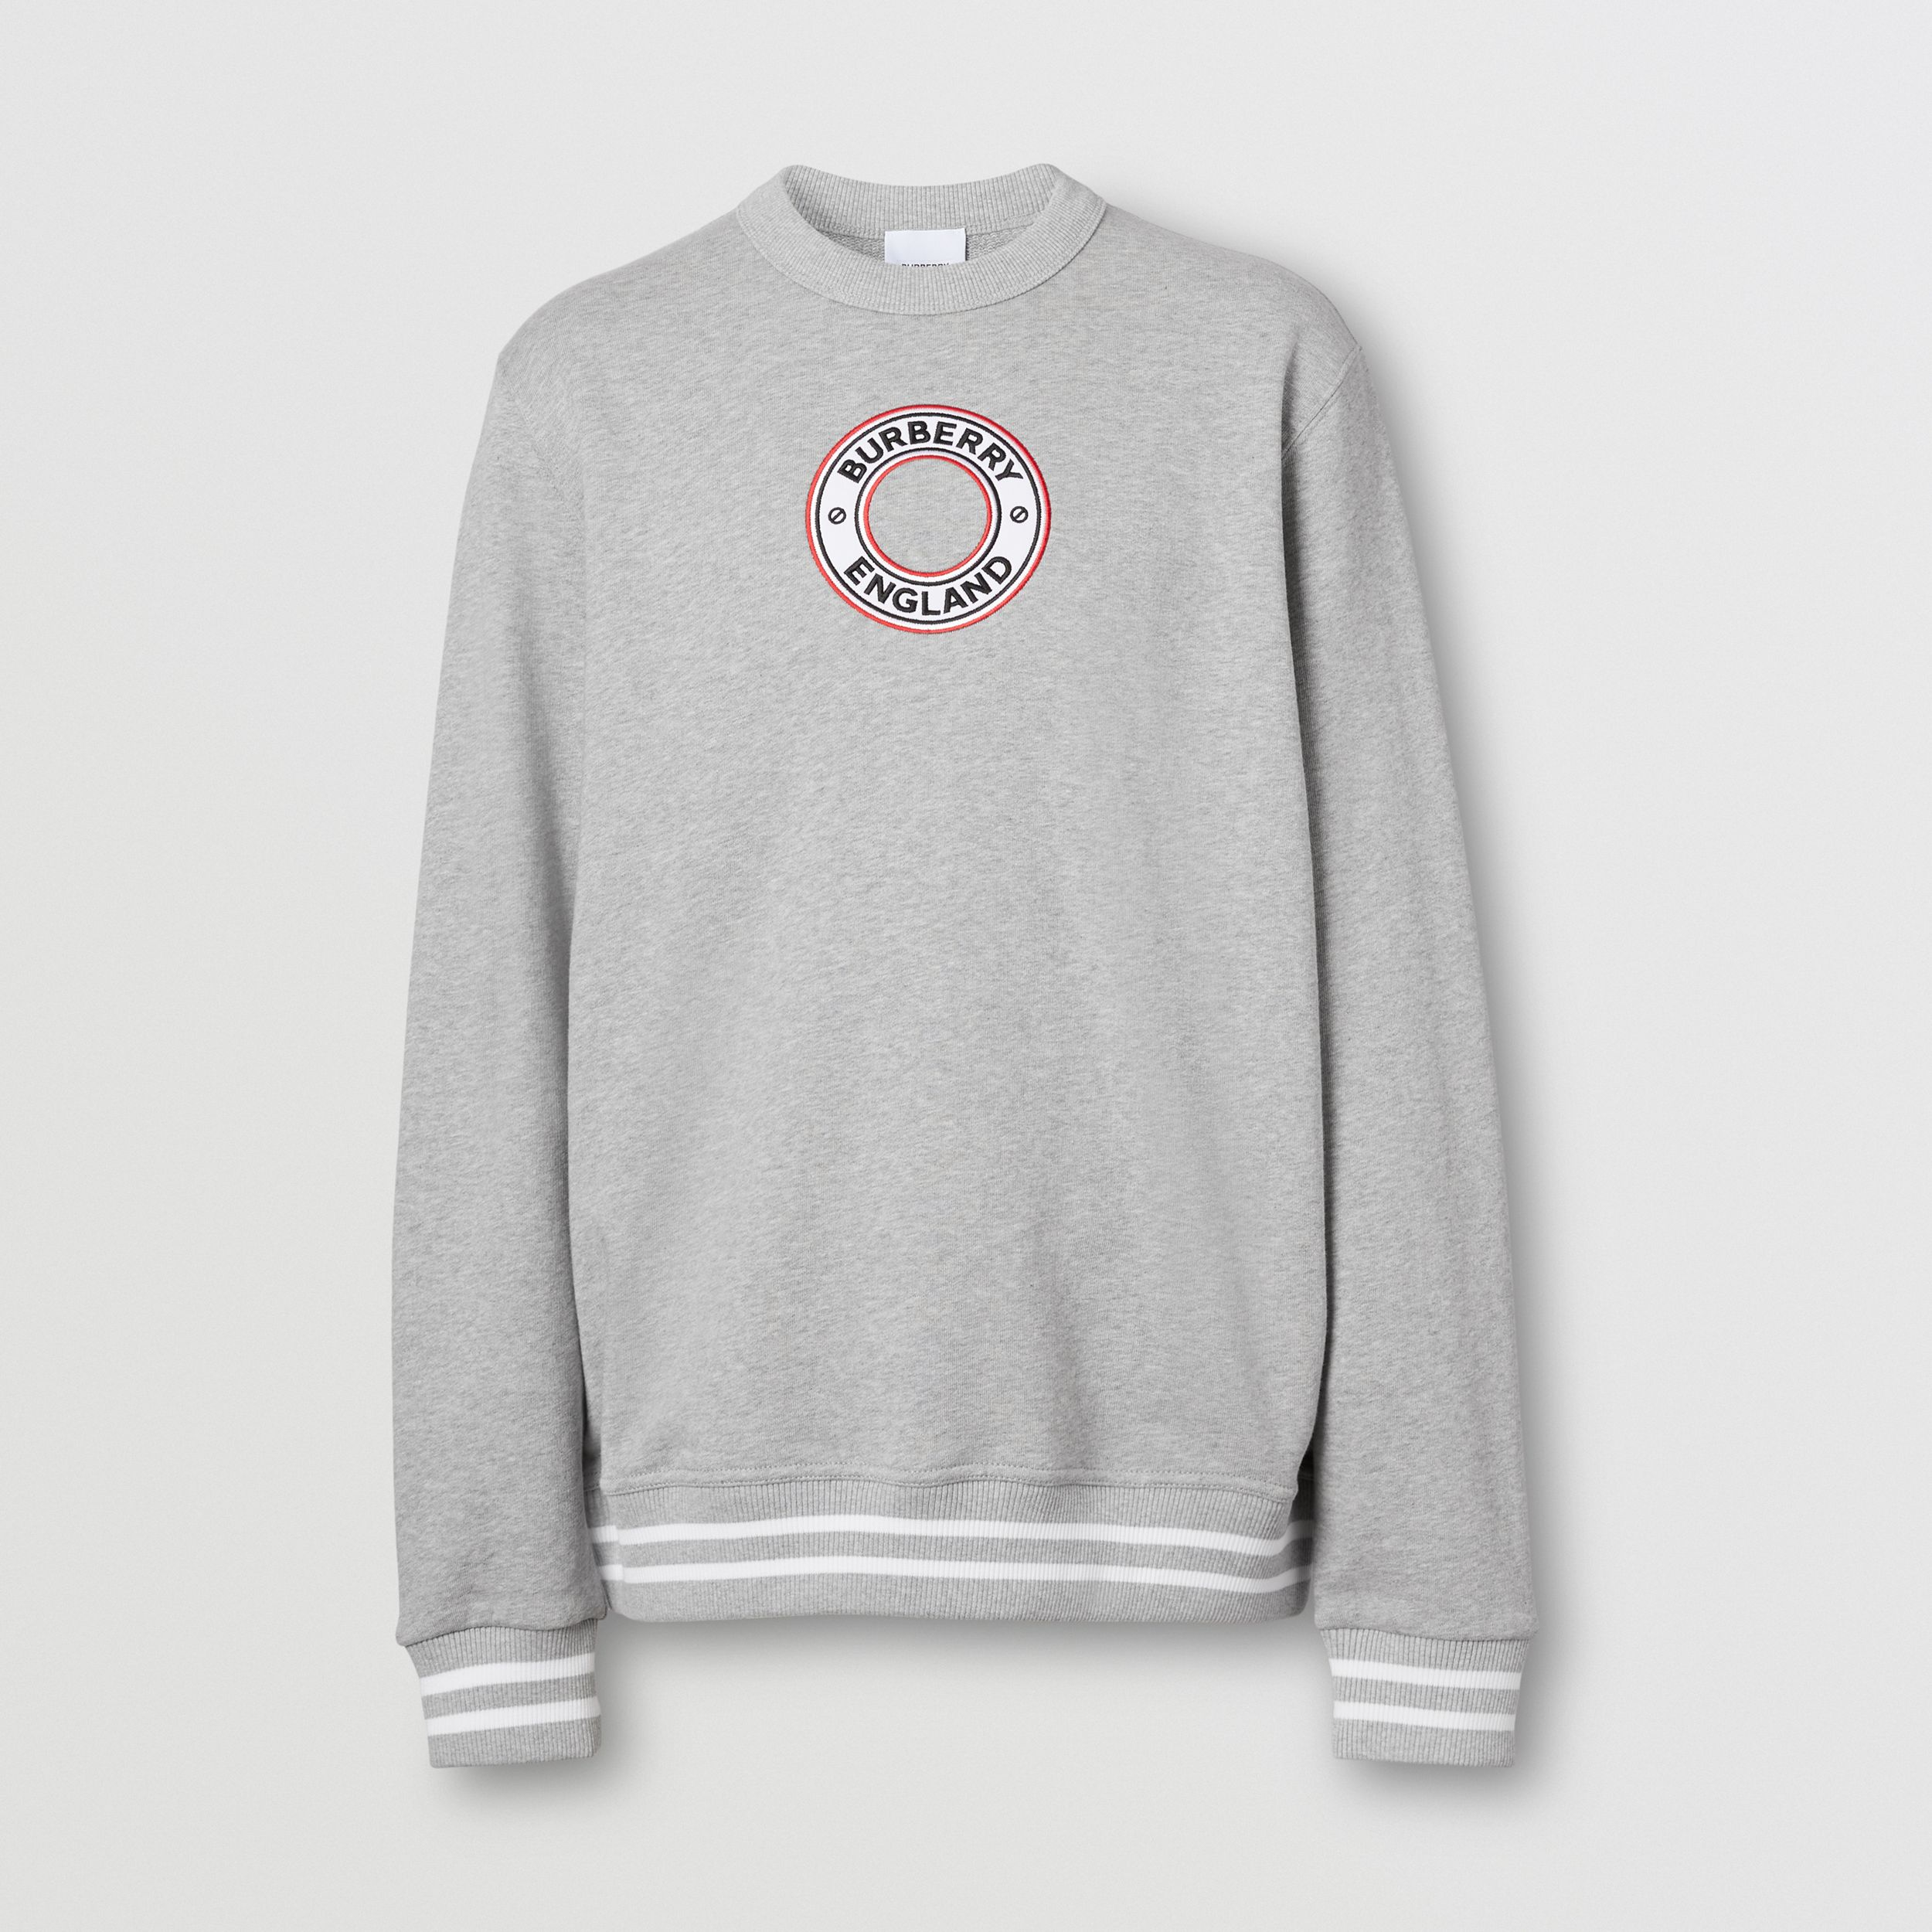 Logo Graphic Appliqué Cotton Sweatshirt in Pale Grey Melange - Men | Burberry United Kingdom - 4